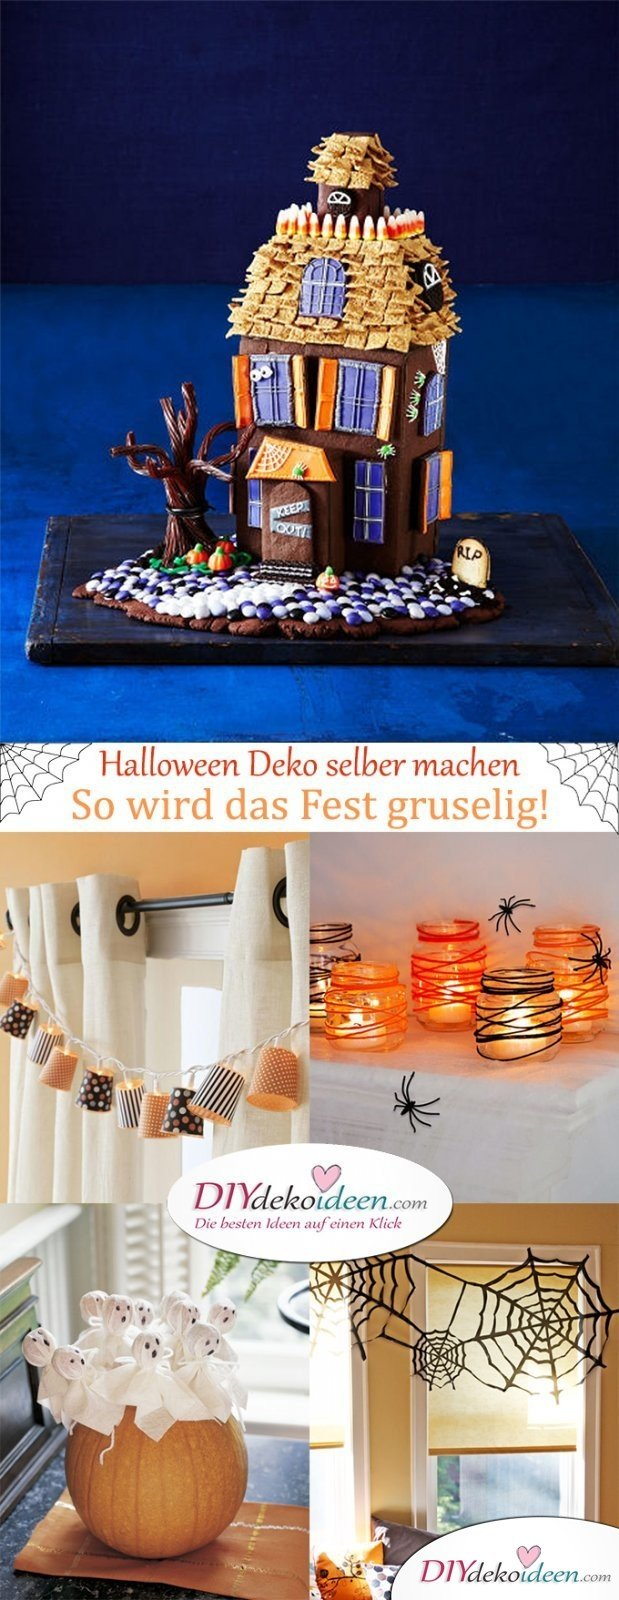 halloween deko selber machen so wird das fest richtig gruselig. Black Bedroom Furniture Sets. Home Design Ideas